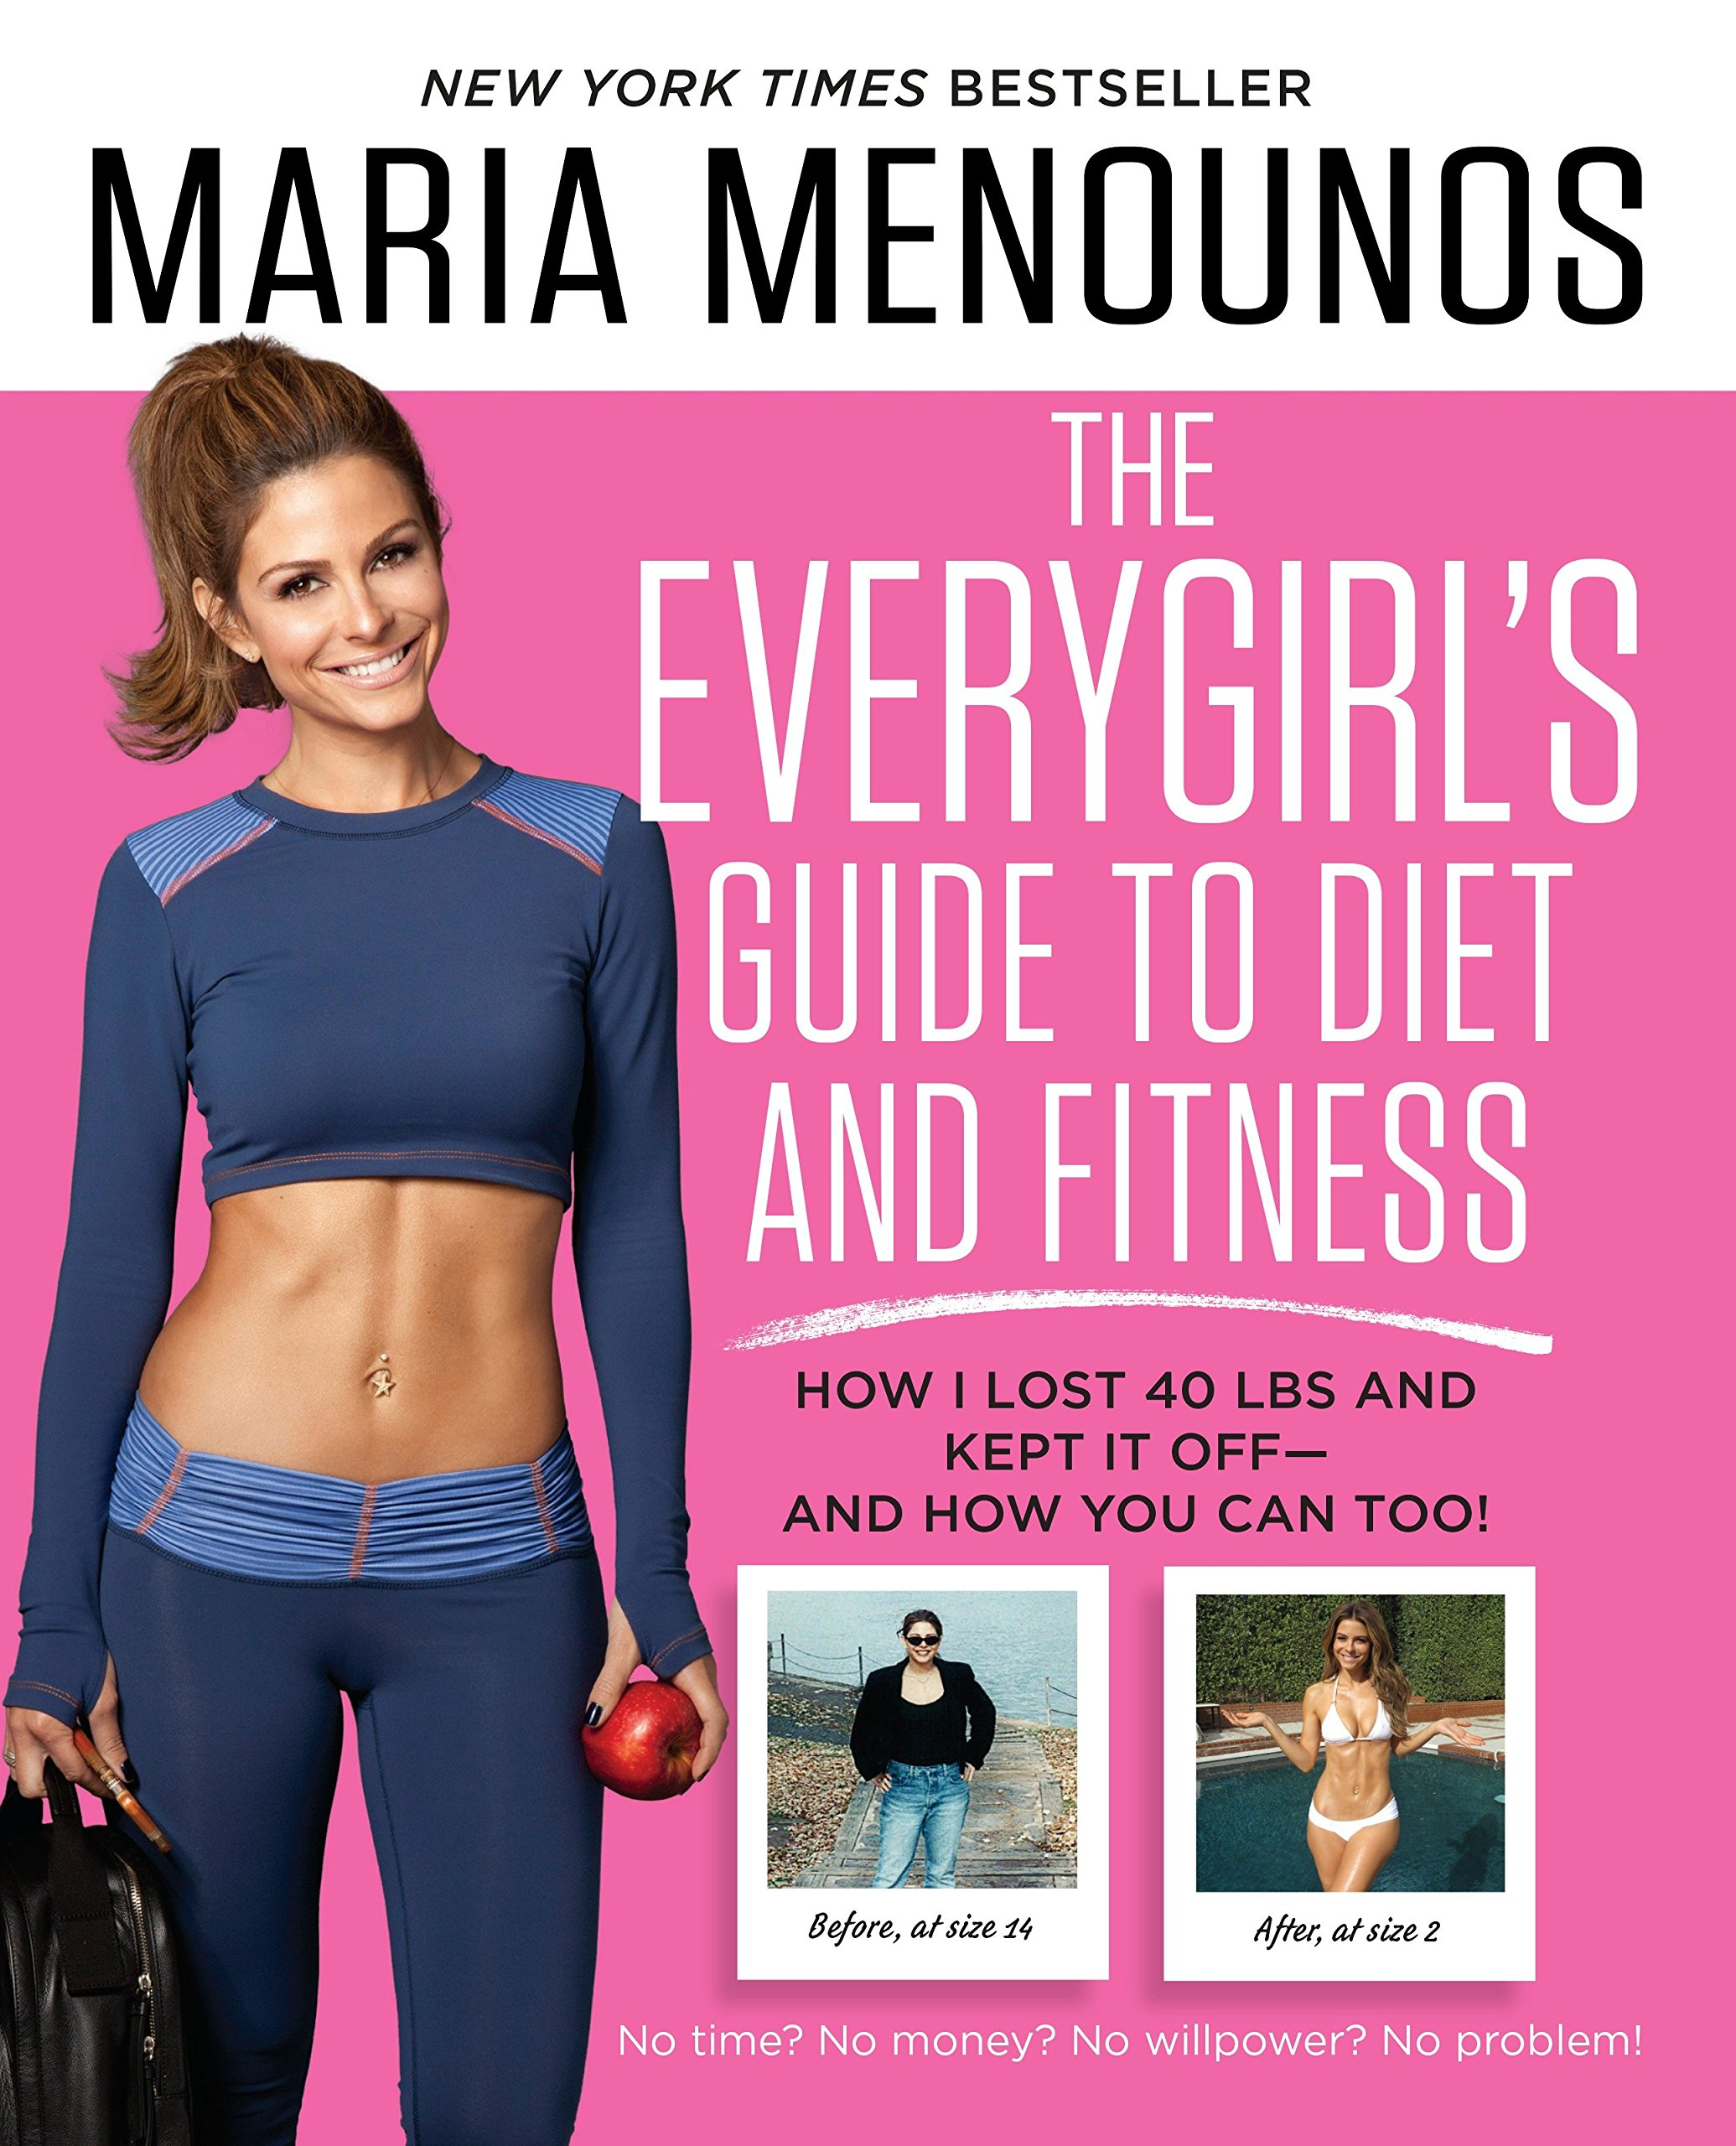 2f40a8e0879 The EveryGirl s Guide to Diet and Fitness  How I Lost 40 lbs and ...